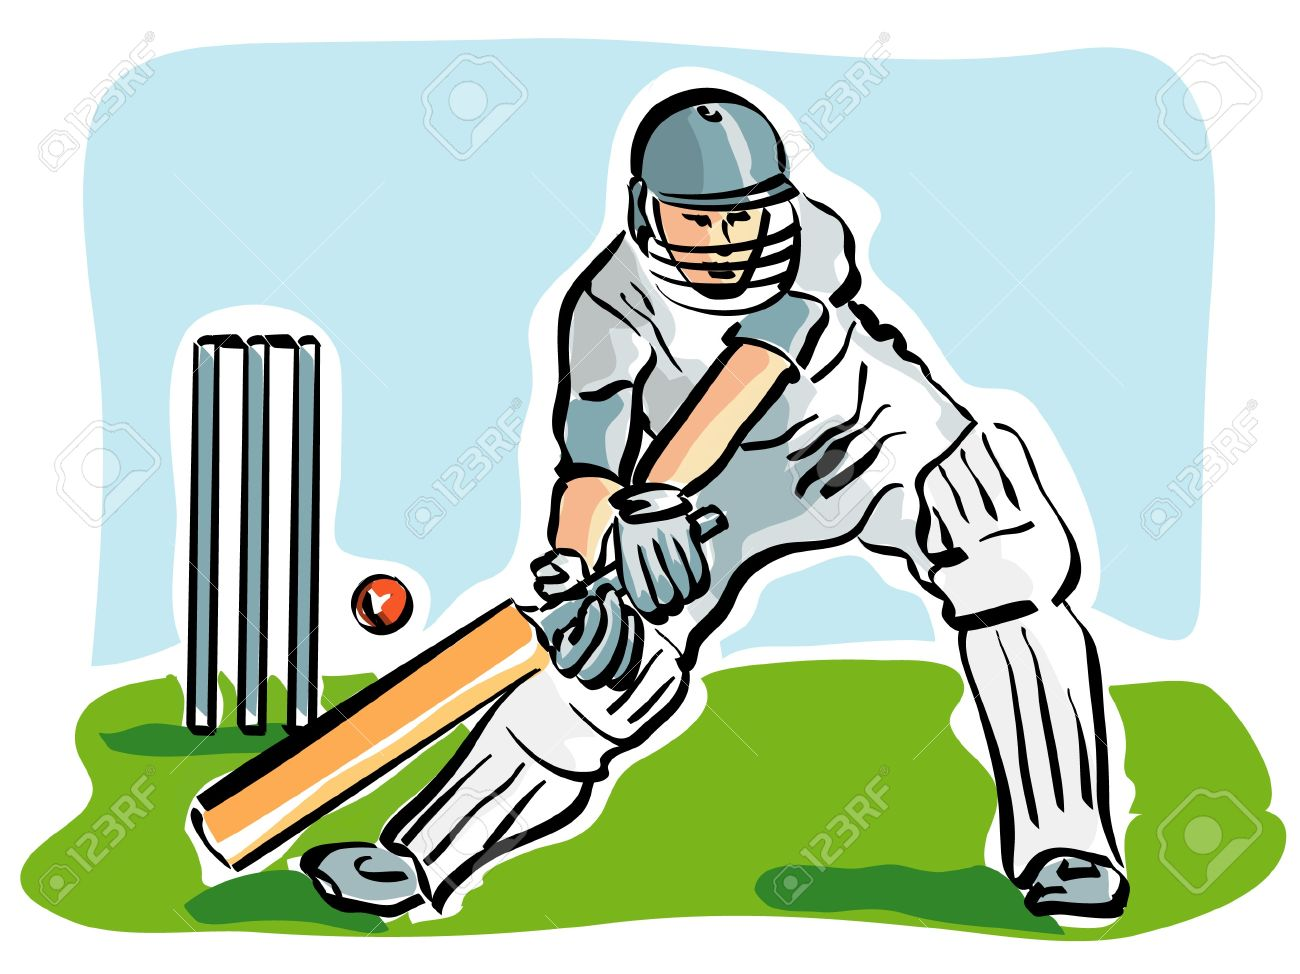 1300x974 Cricket Bat Clip Art Cricket create a brainstorm diagram to wire a